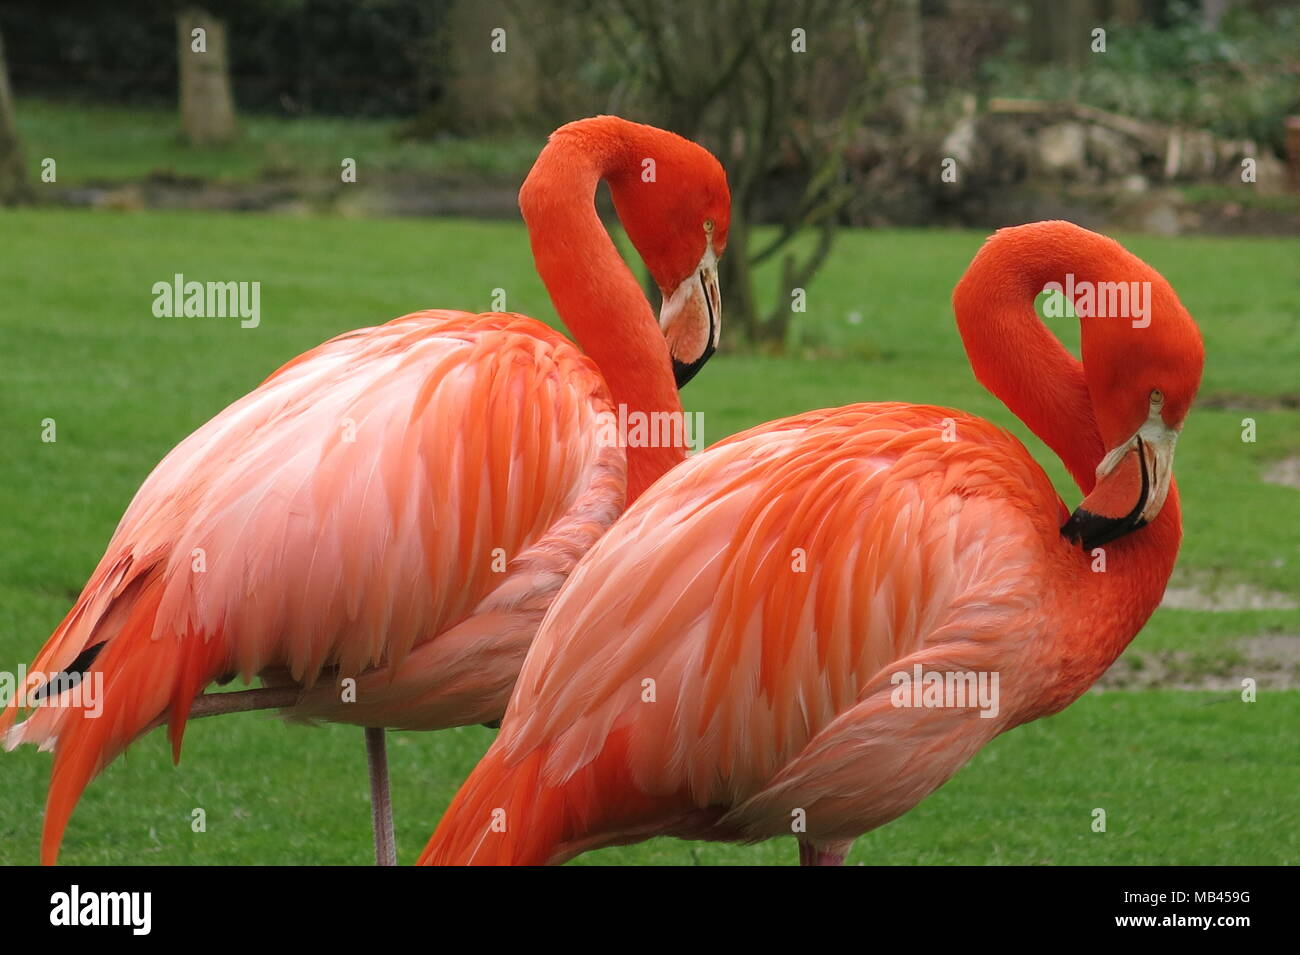 A pair of brightly coloured flamingos, whose orange plumage is very striking against the fresh green grass of spring time - Stock Image